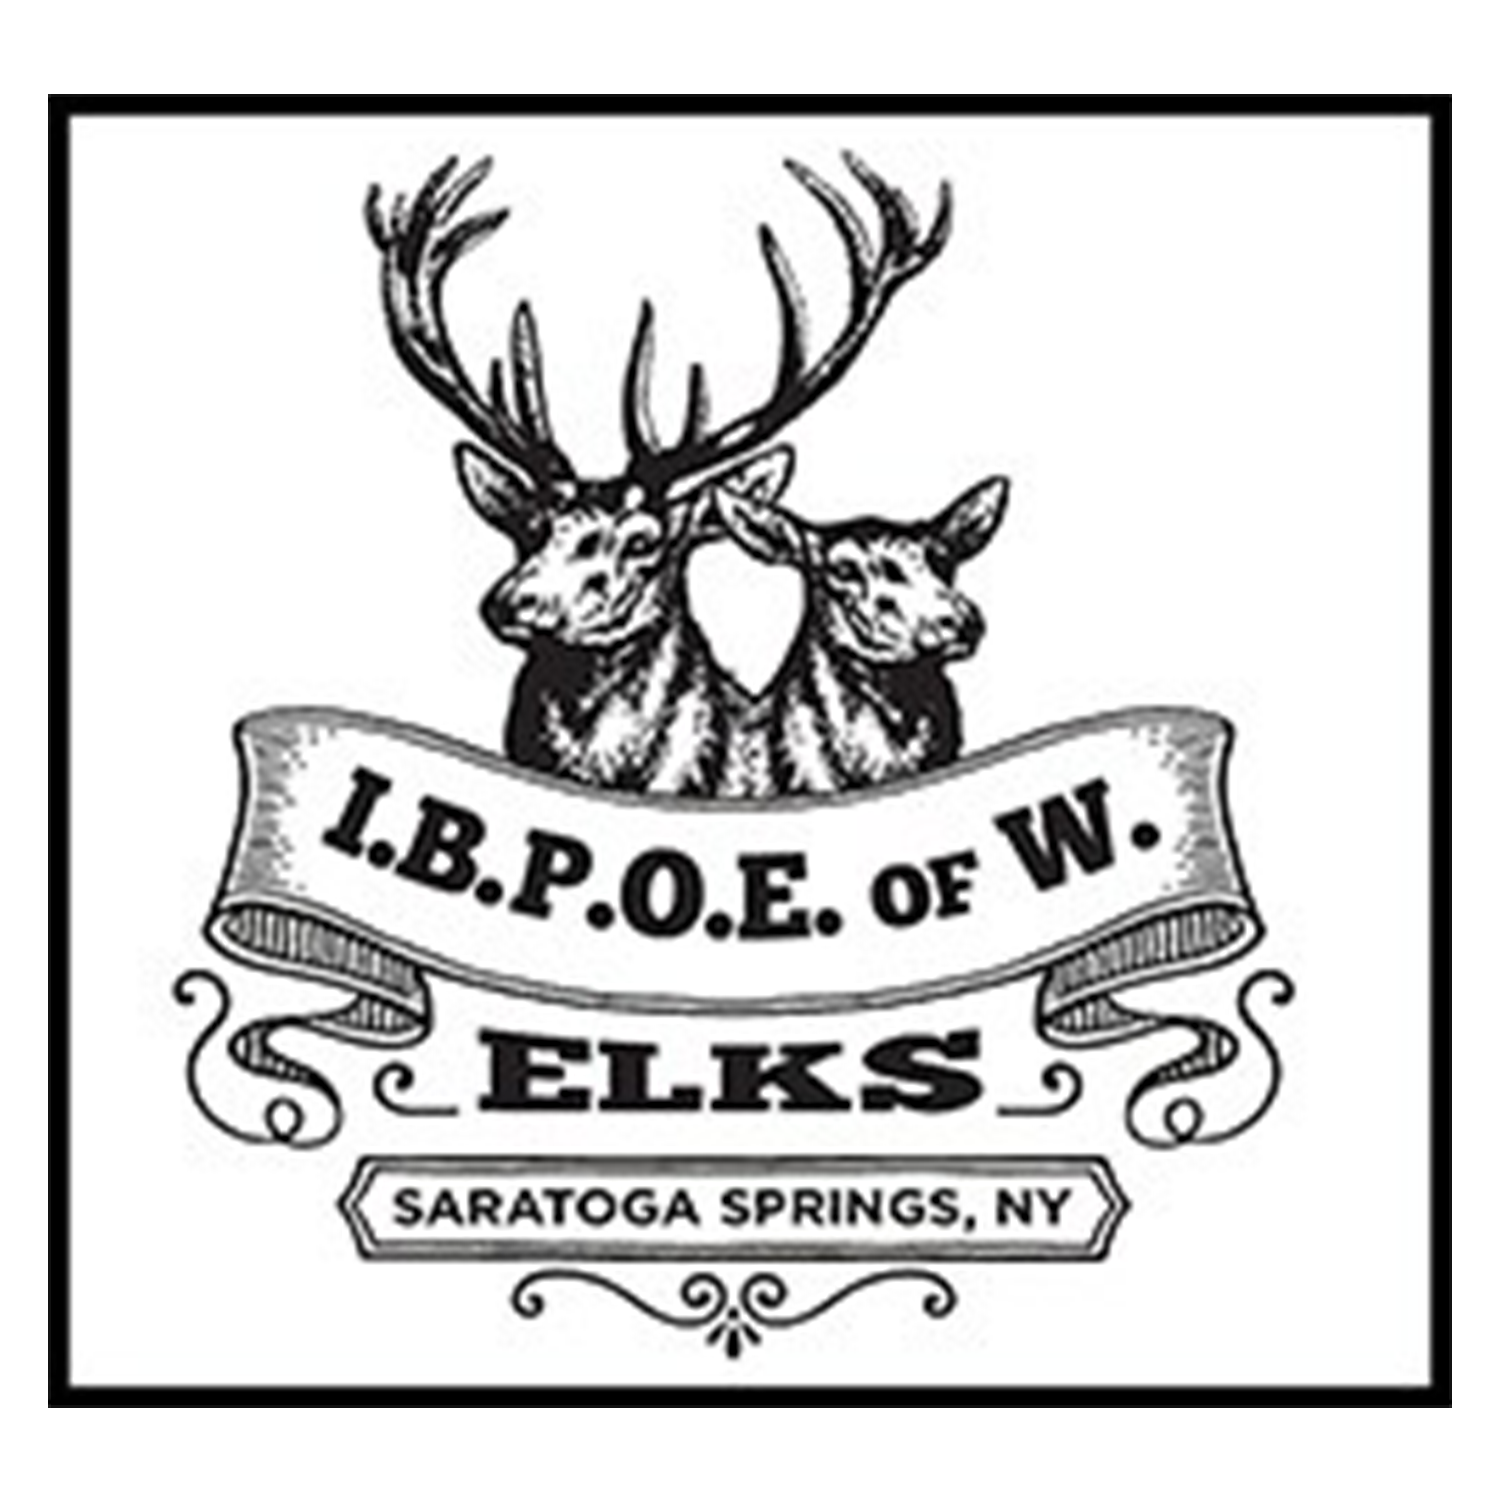 Frederick Allen Elks Lodge #609